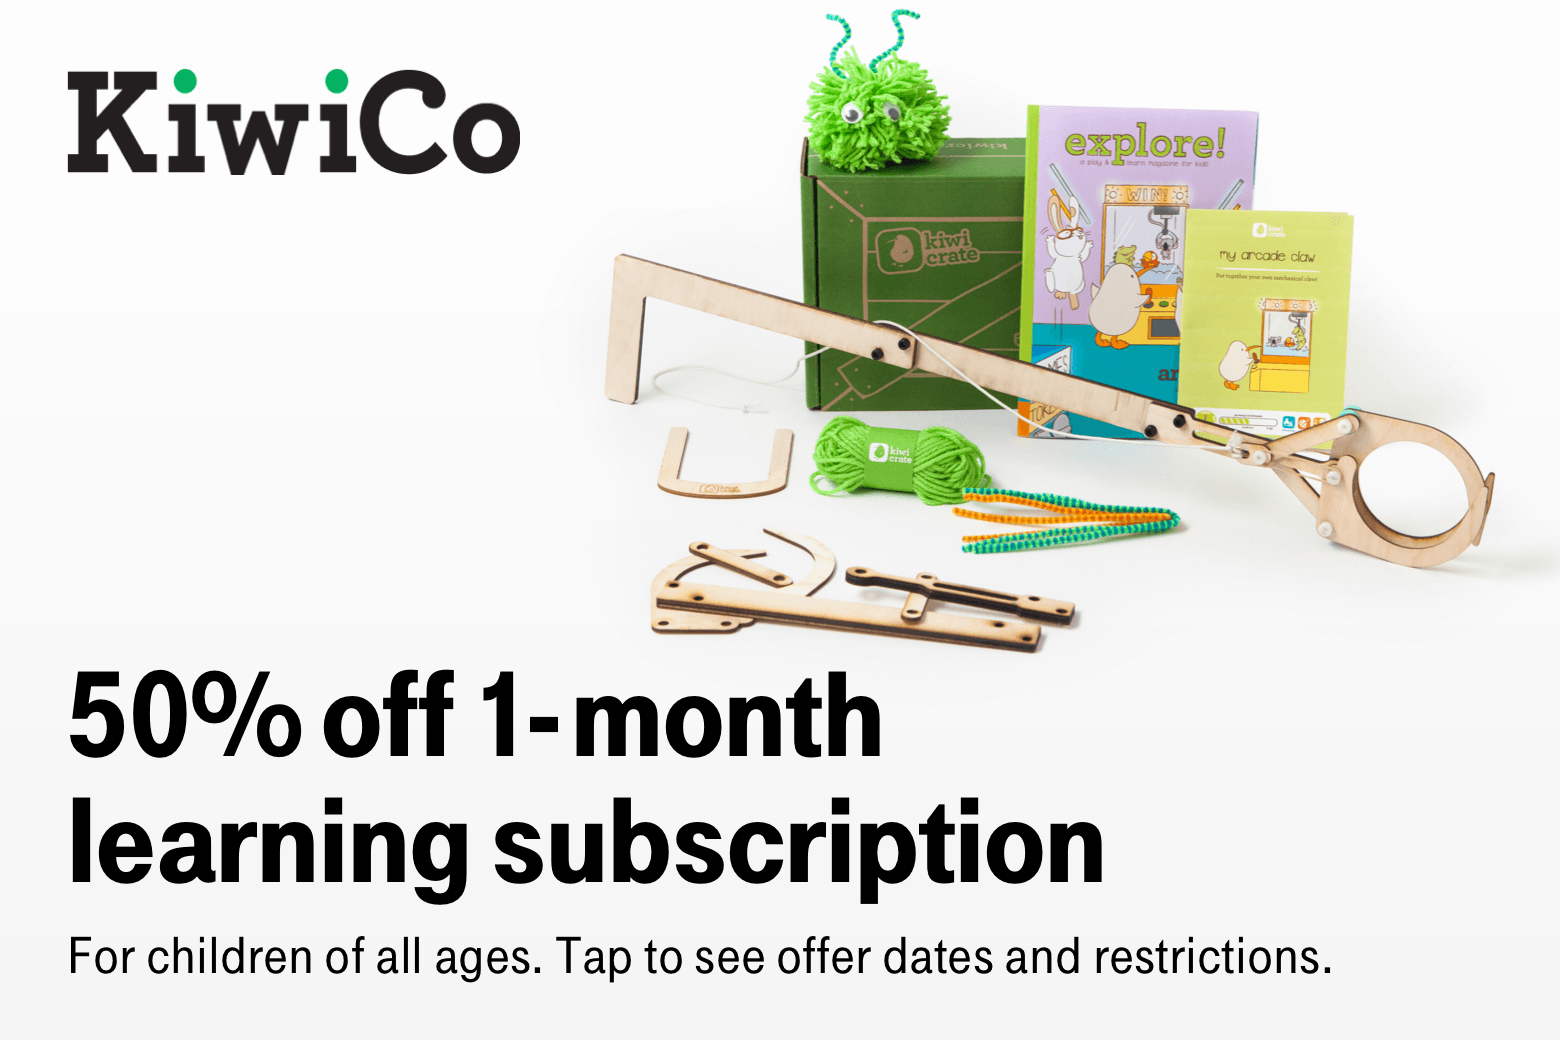 KiwiCo. 50% off 1-month learning subscription. For children of all ages. Tap to see offer dates and restrictions.